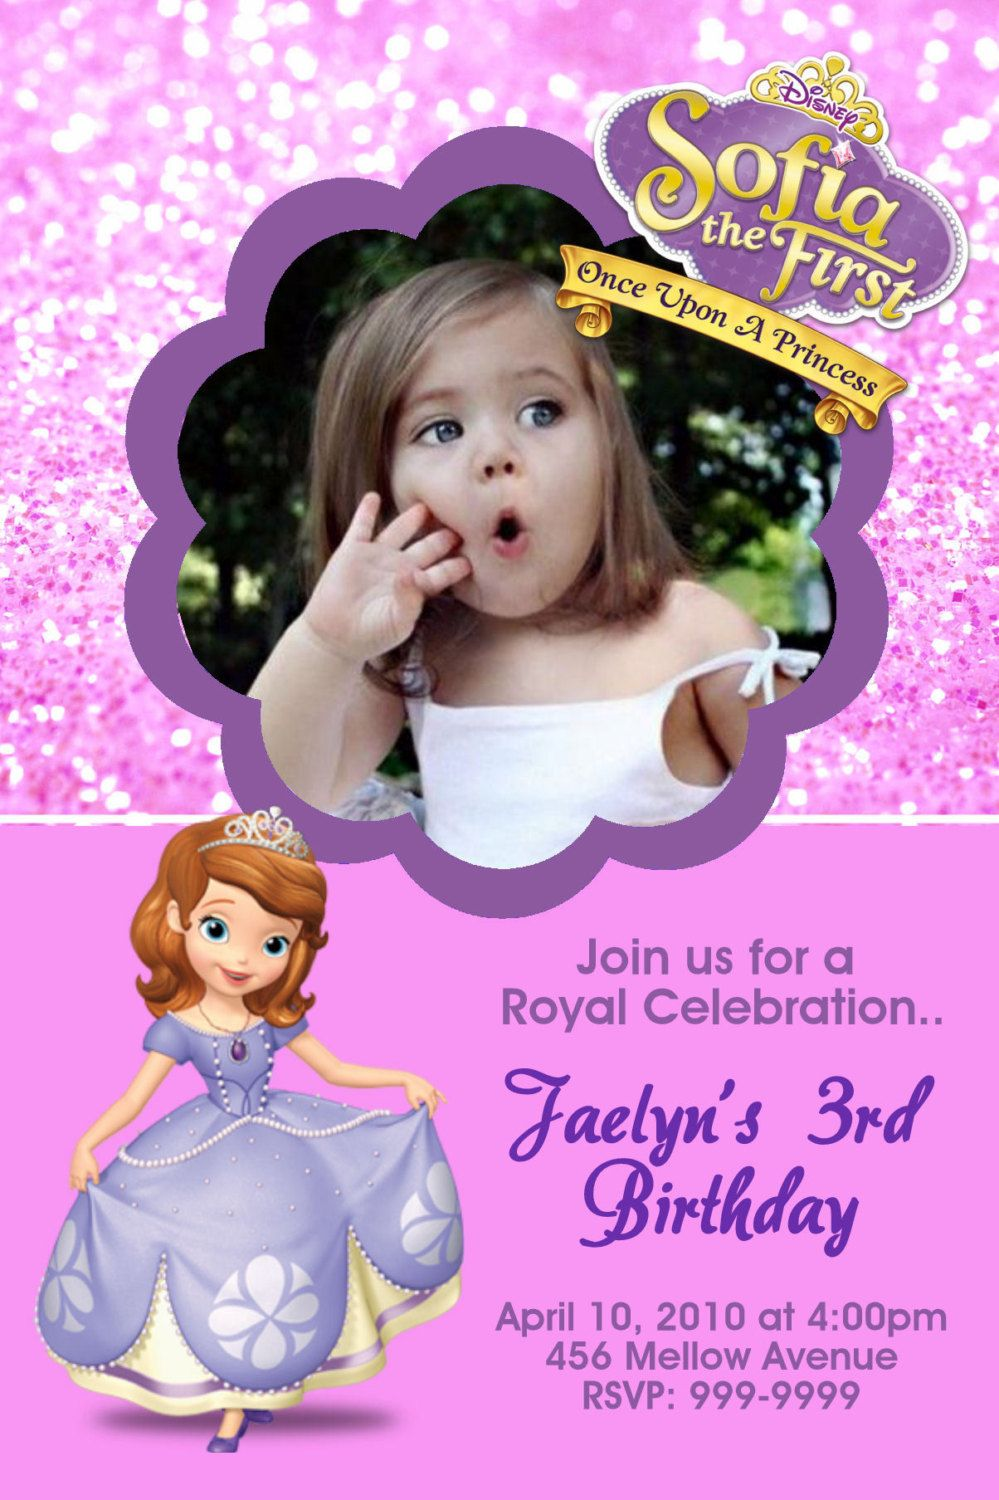 Sofia the First Birthday Party Invitations 24 HOUR by Mrsinvites ...